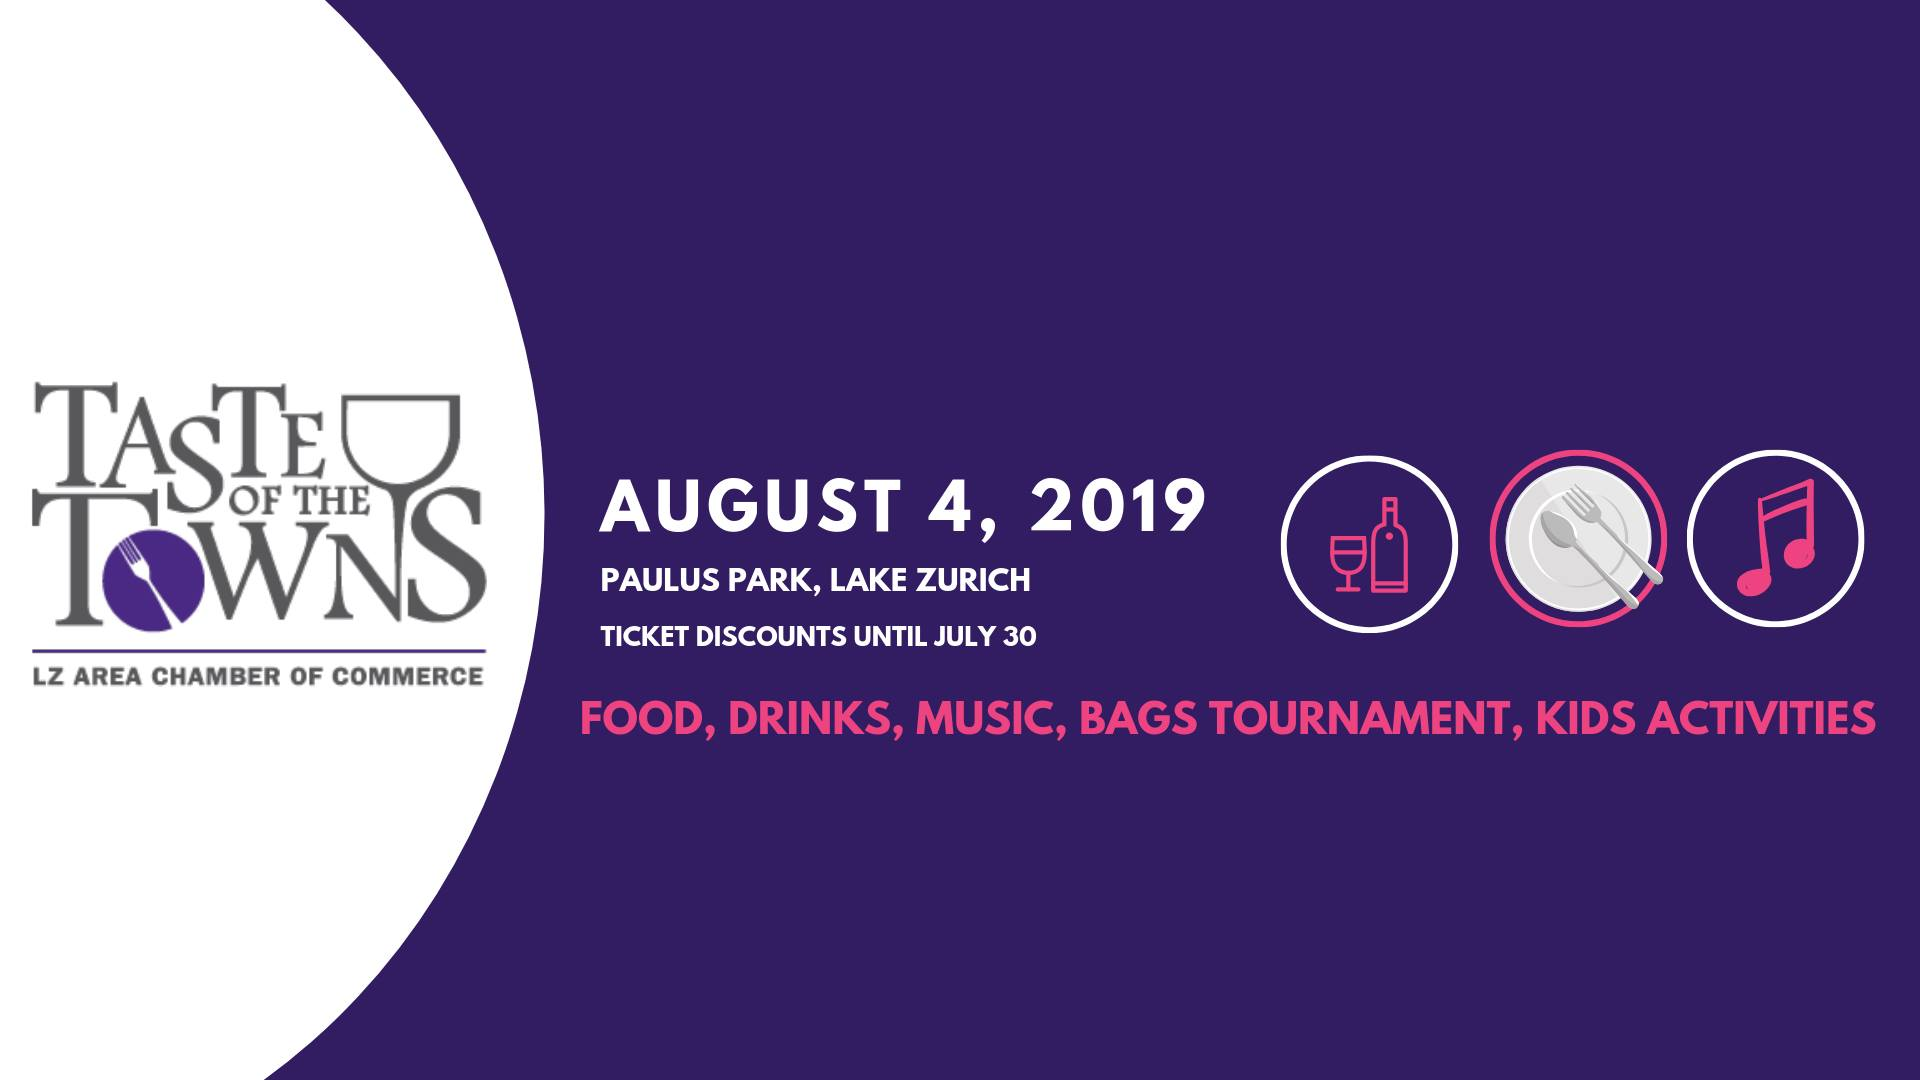 Lake County, Illinois, CVB - - Taste of the Towns in Lake Zurich